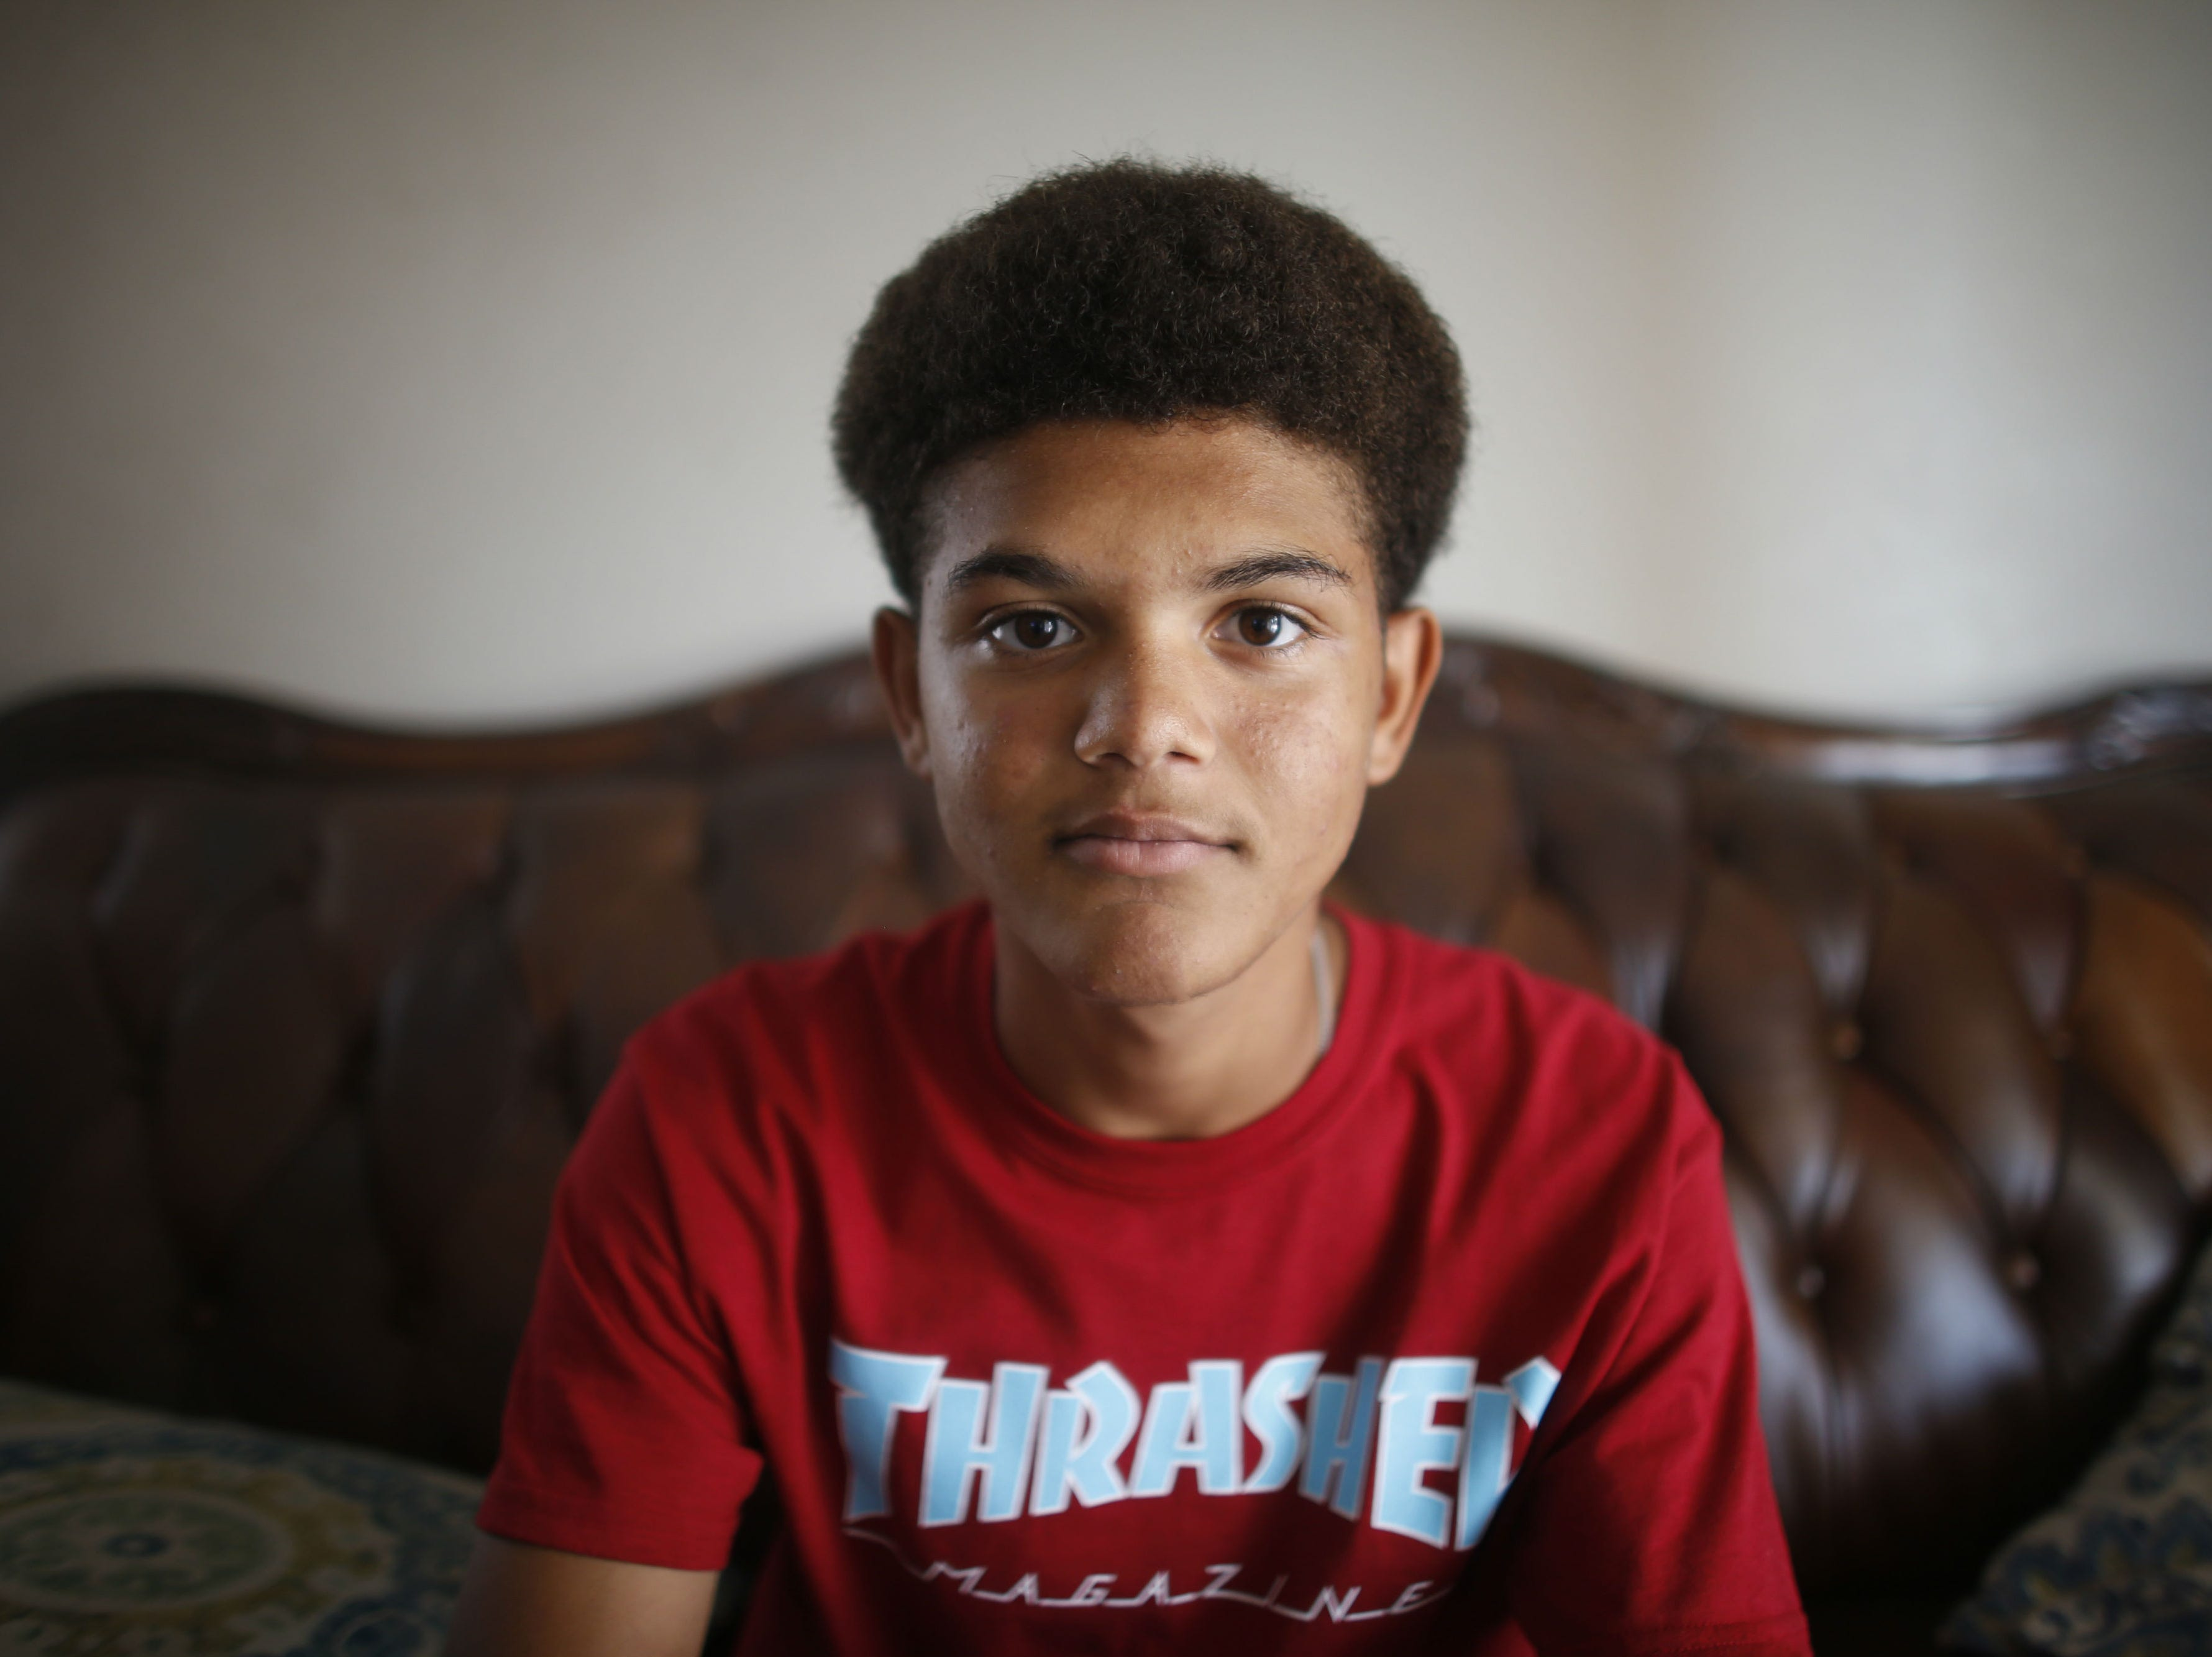 Josiah Wiedman poses for a portrait in his home in El Mirage on Aug. 16, 2018.